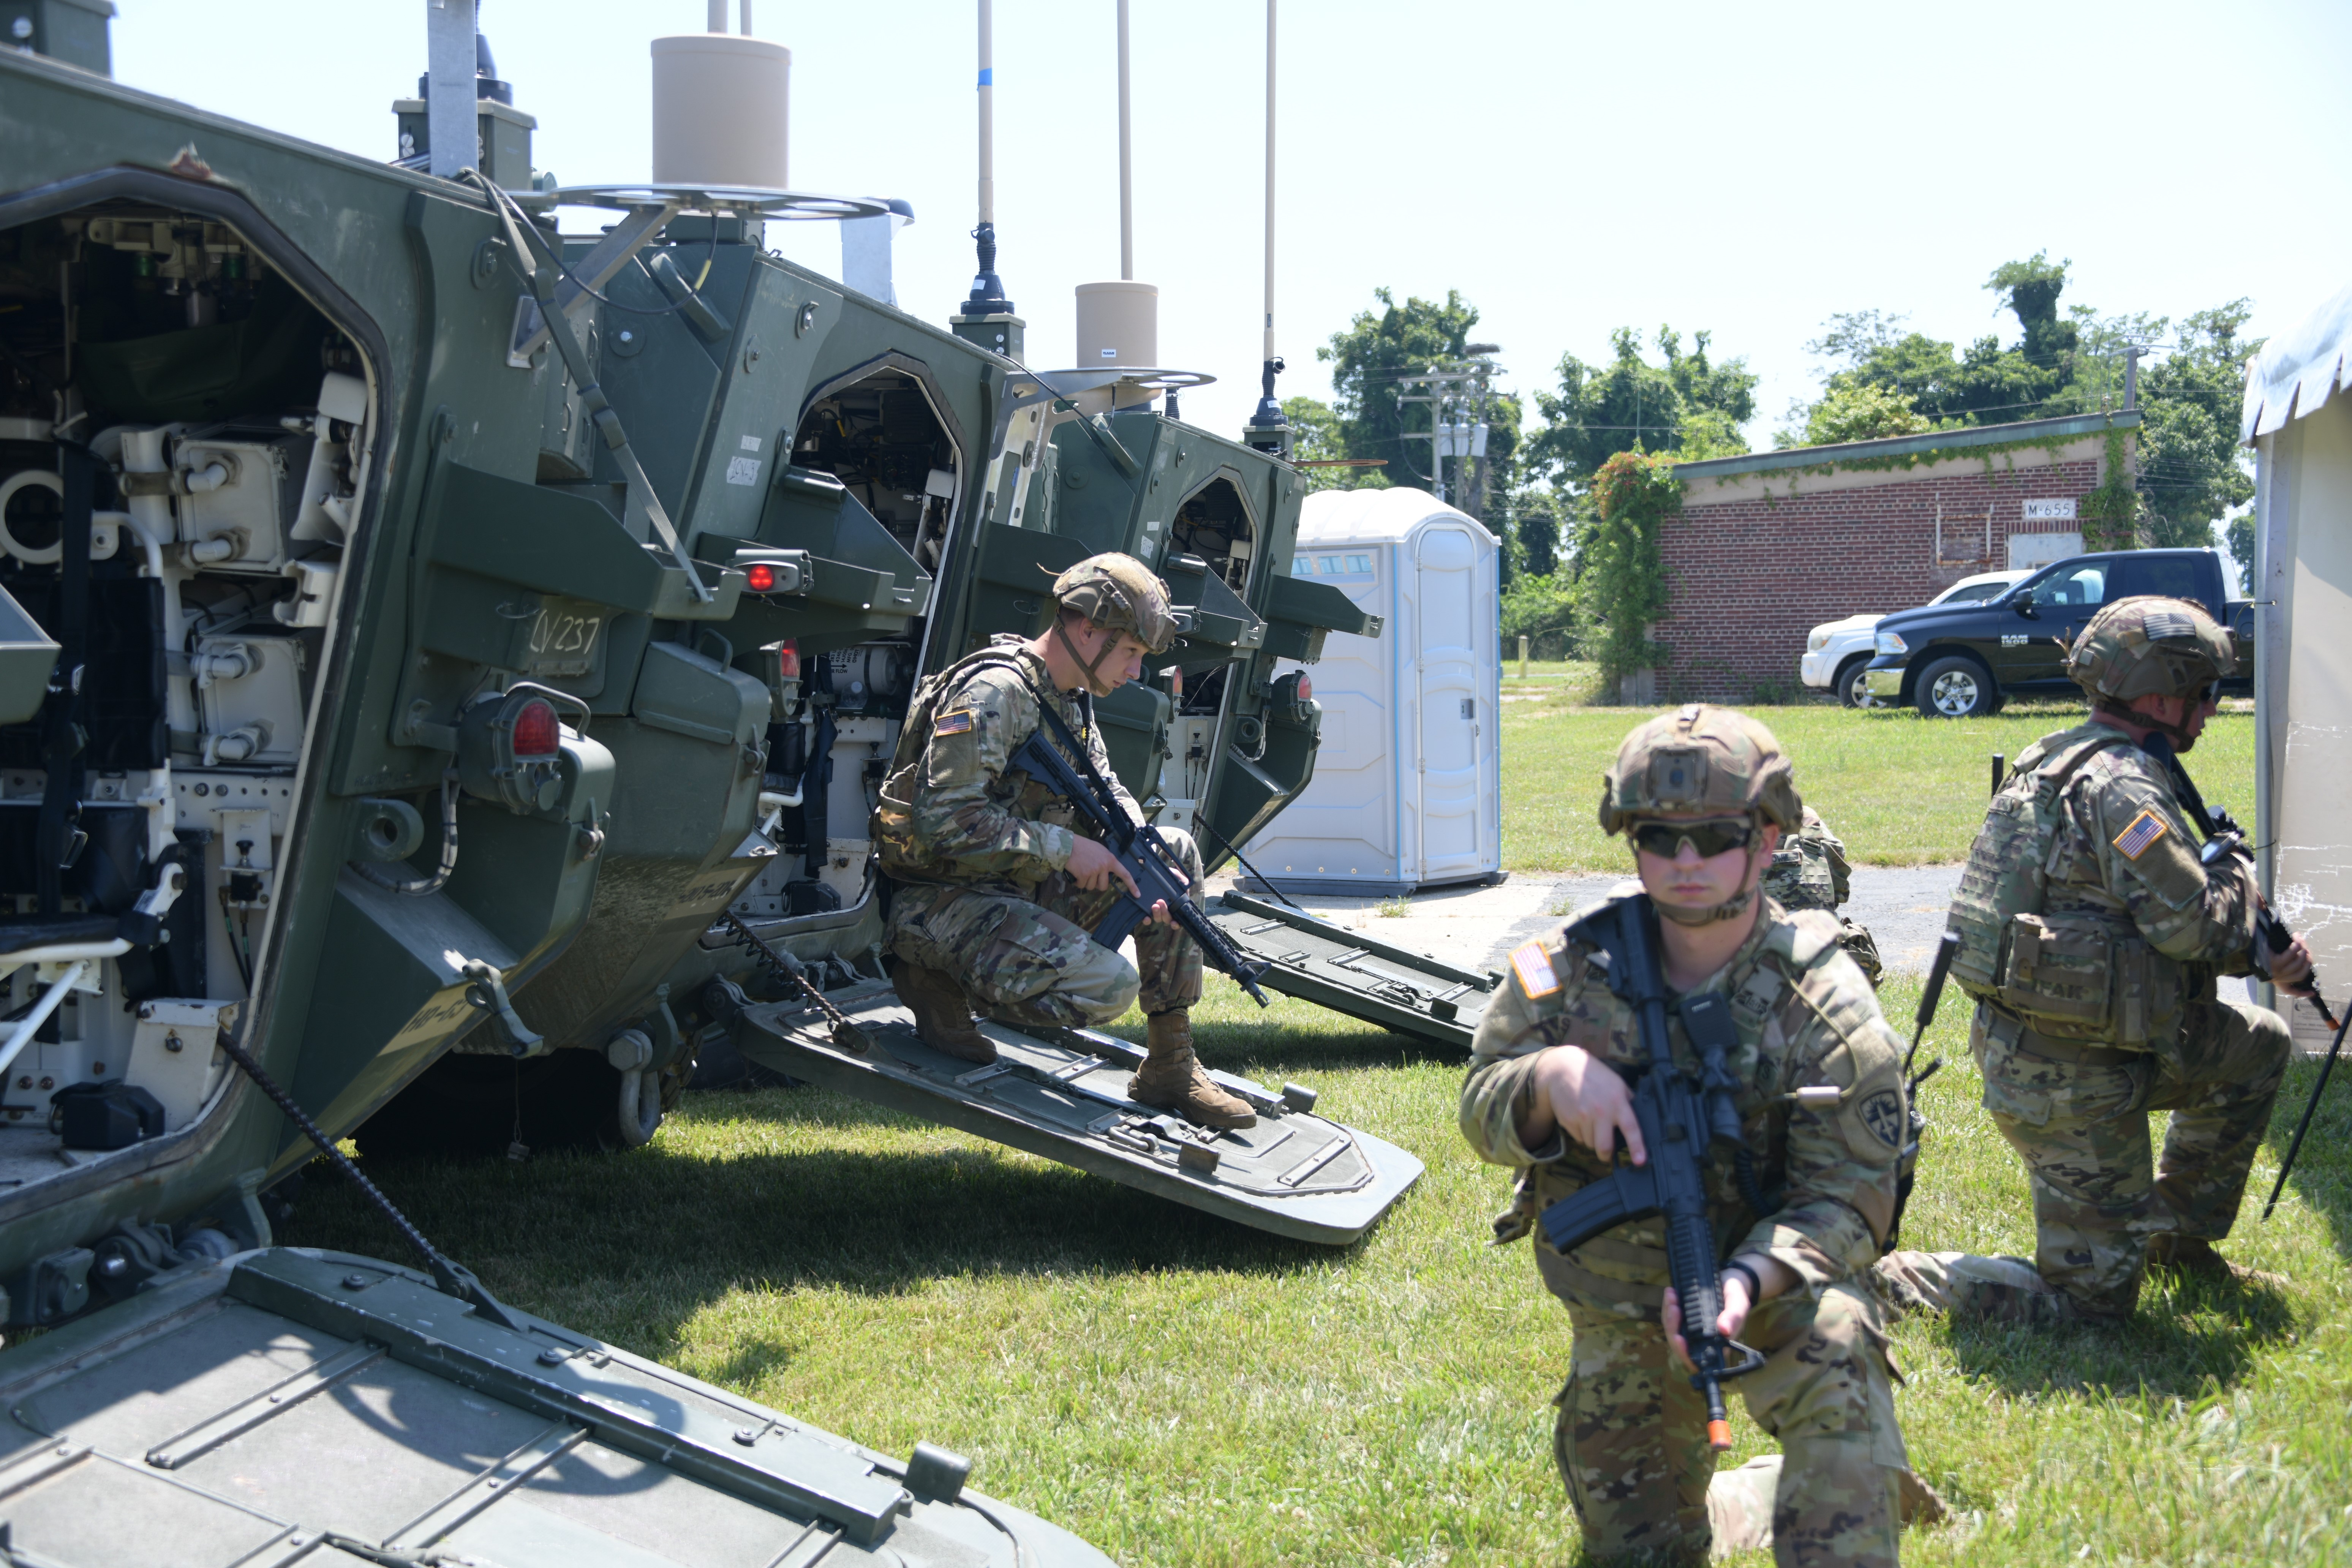 Soldiers demonstrated new U.S. Army tactical network capabilities for Stryker brigades on June 30 at Aberdeen Proving Ground. (U.S. Army)